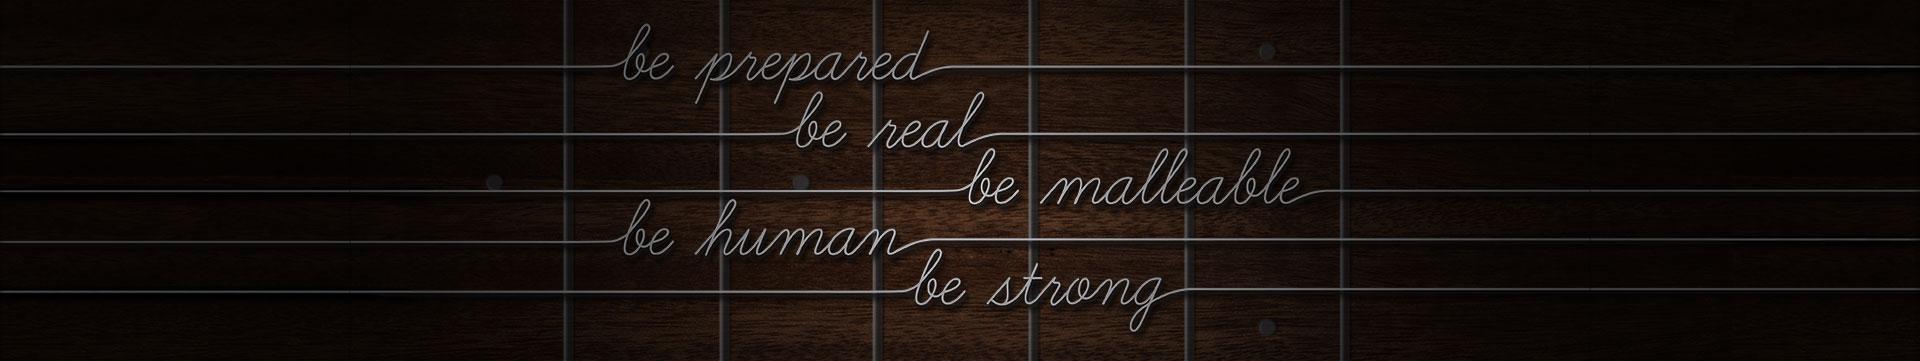 Be Prepared, Be Real, Be Malleable, Be Human, Be Strong